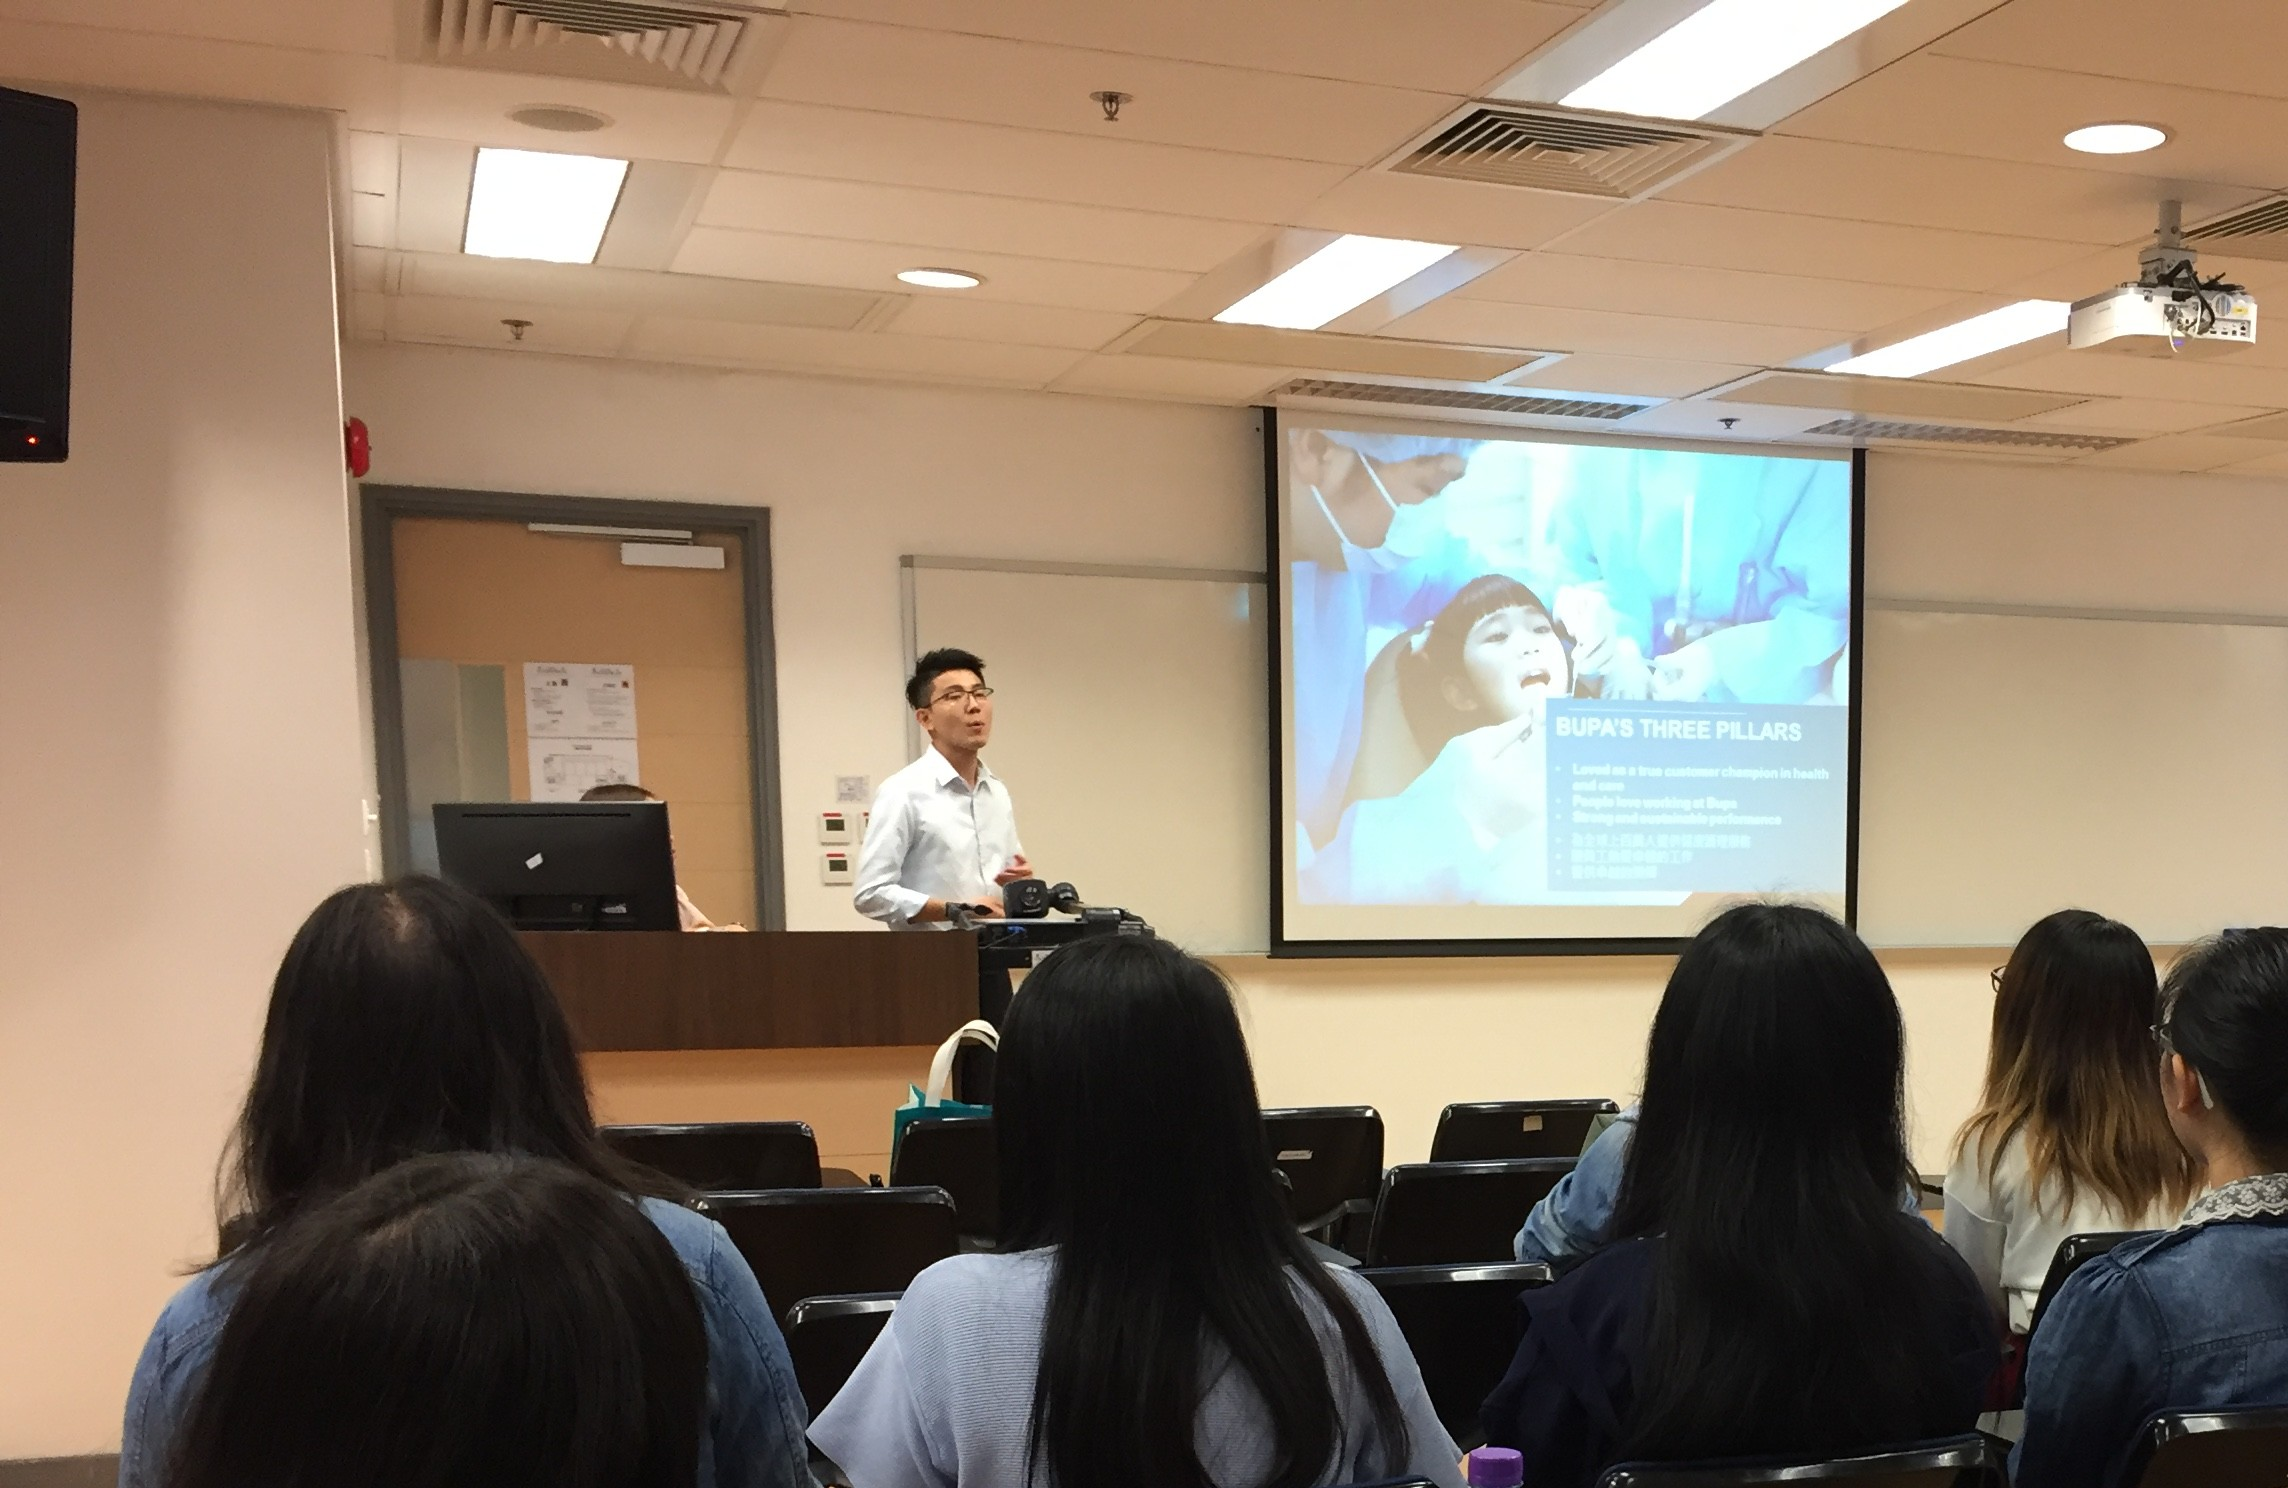 Career talk by Quality HealthCare - Photo - 1